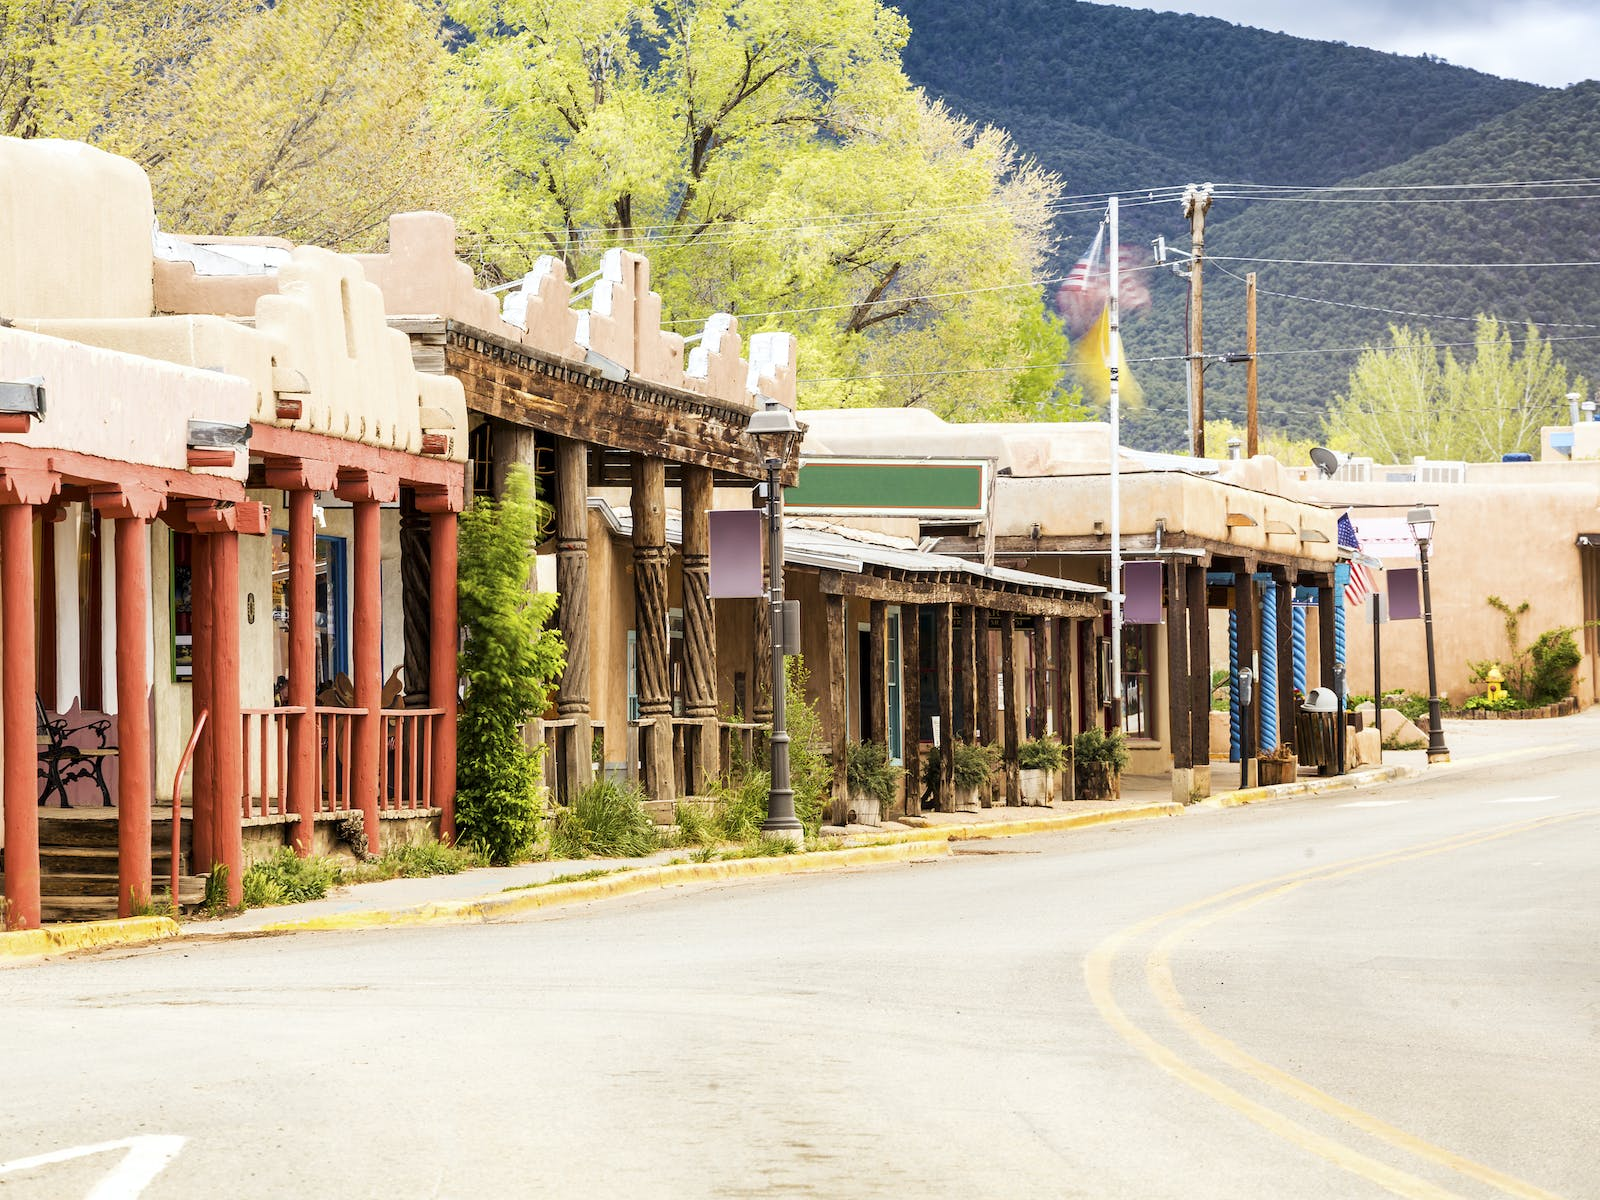 Storefronts in Taos, NM